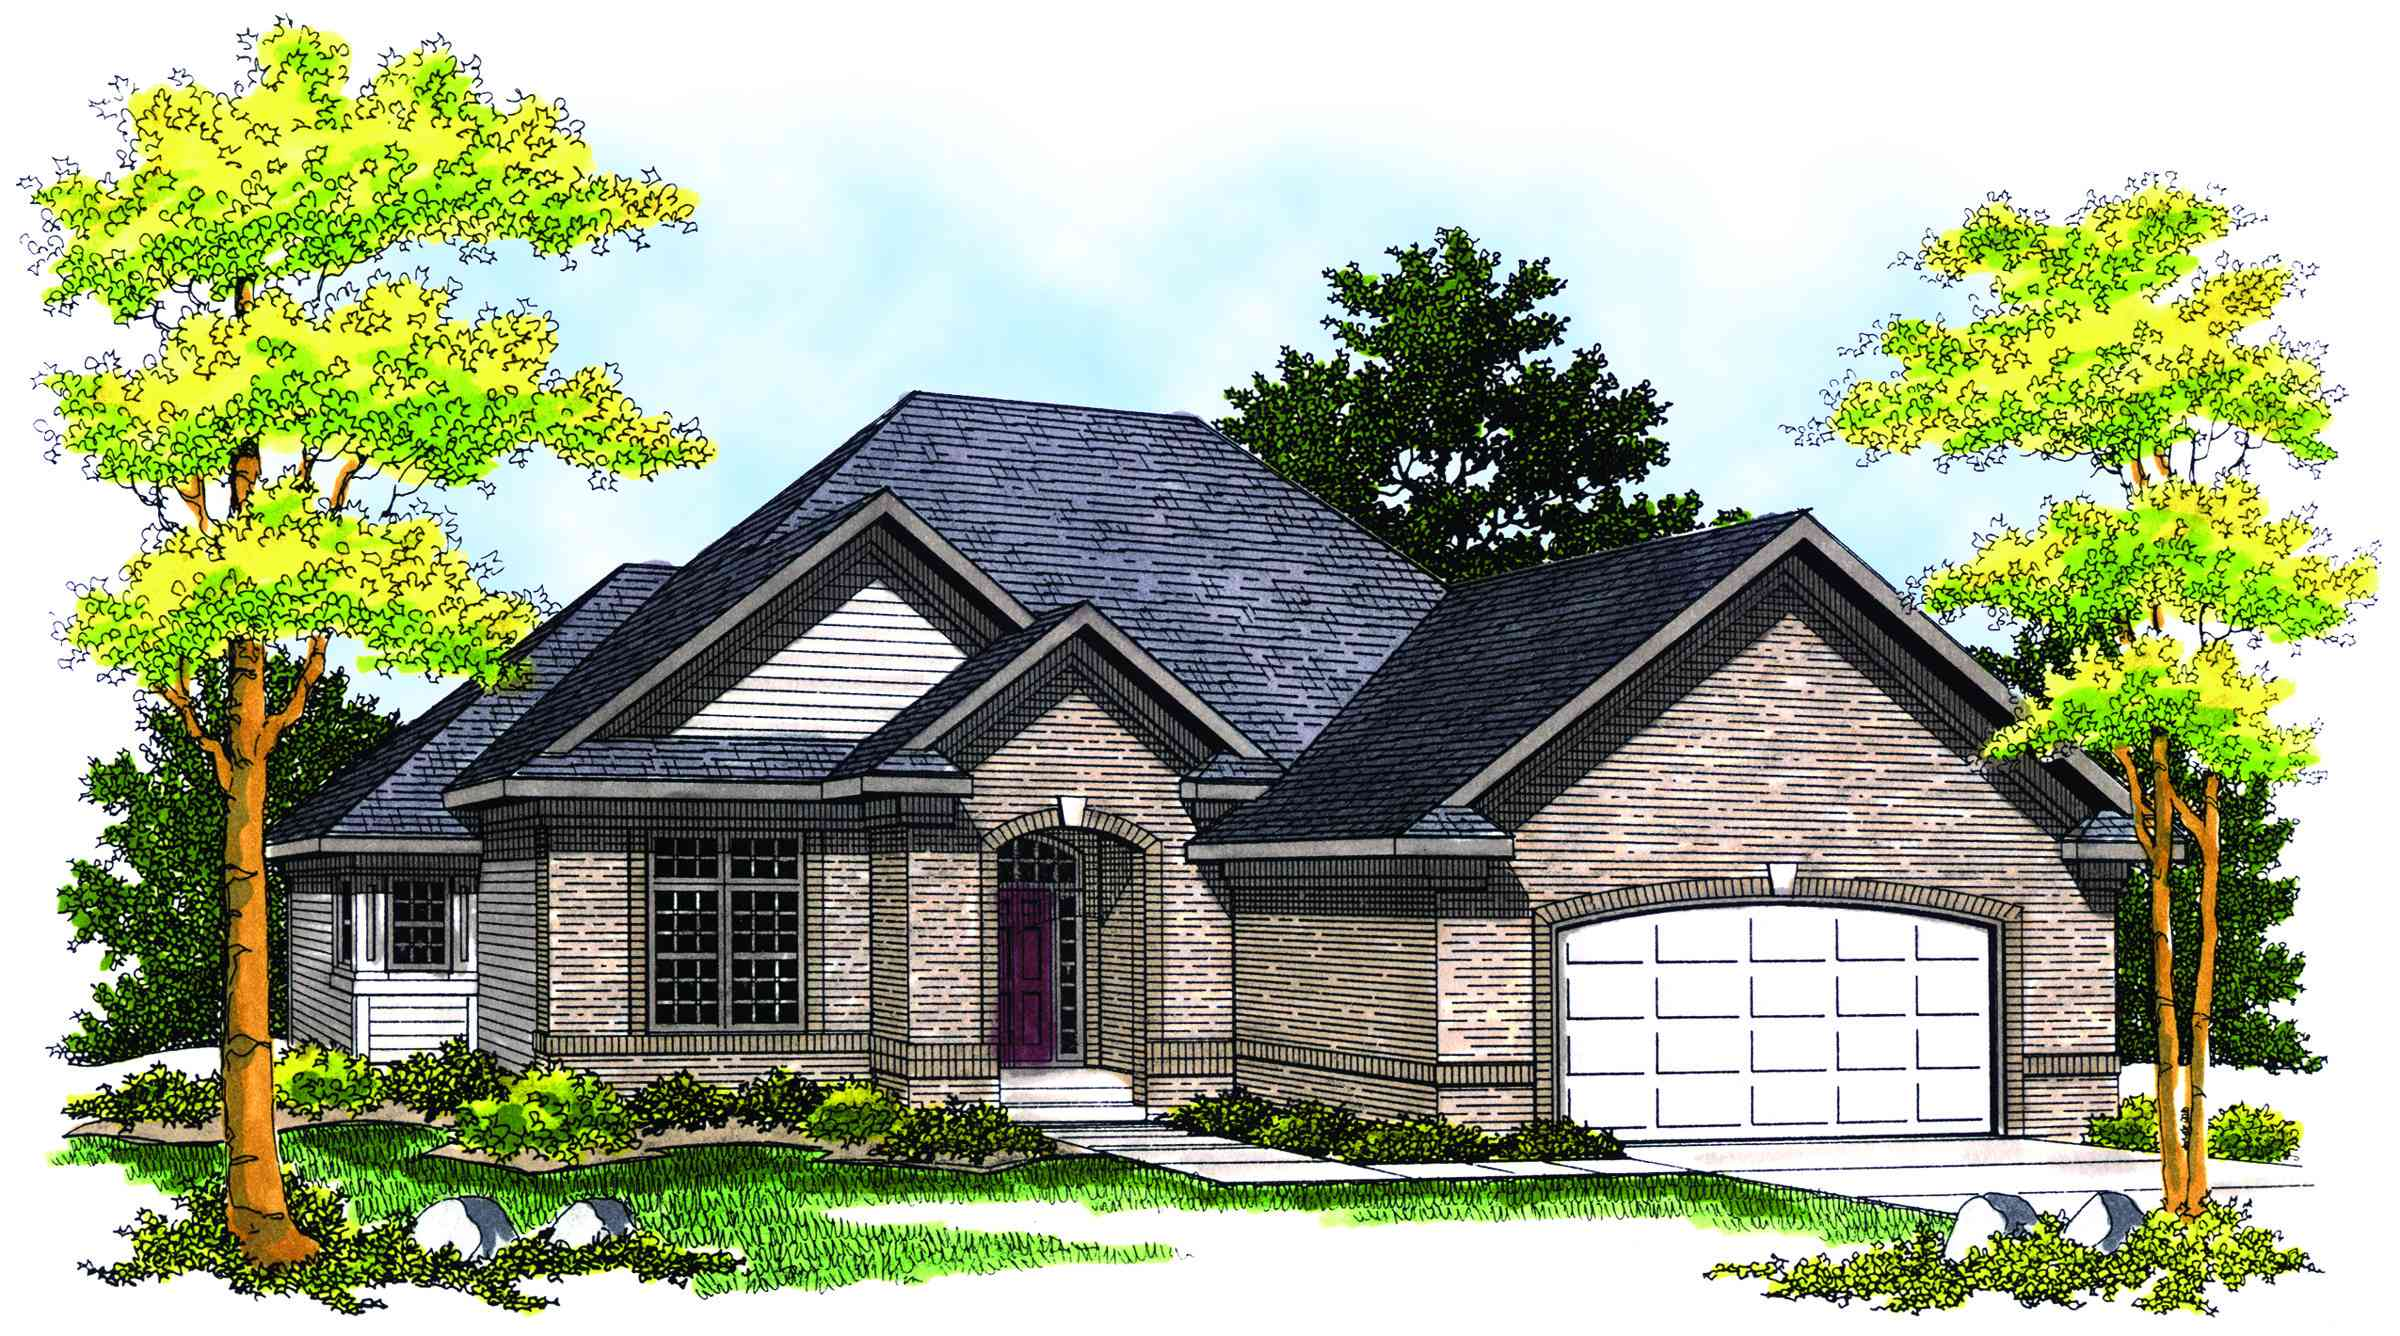 Charming ranch style home plan 89120ah 1st floor for Charming house plans